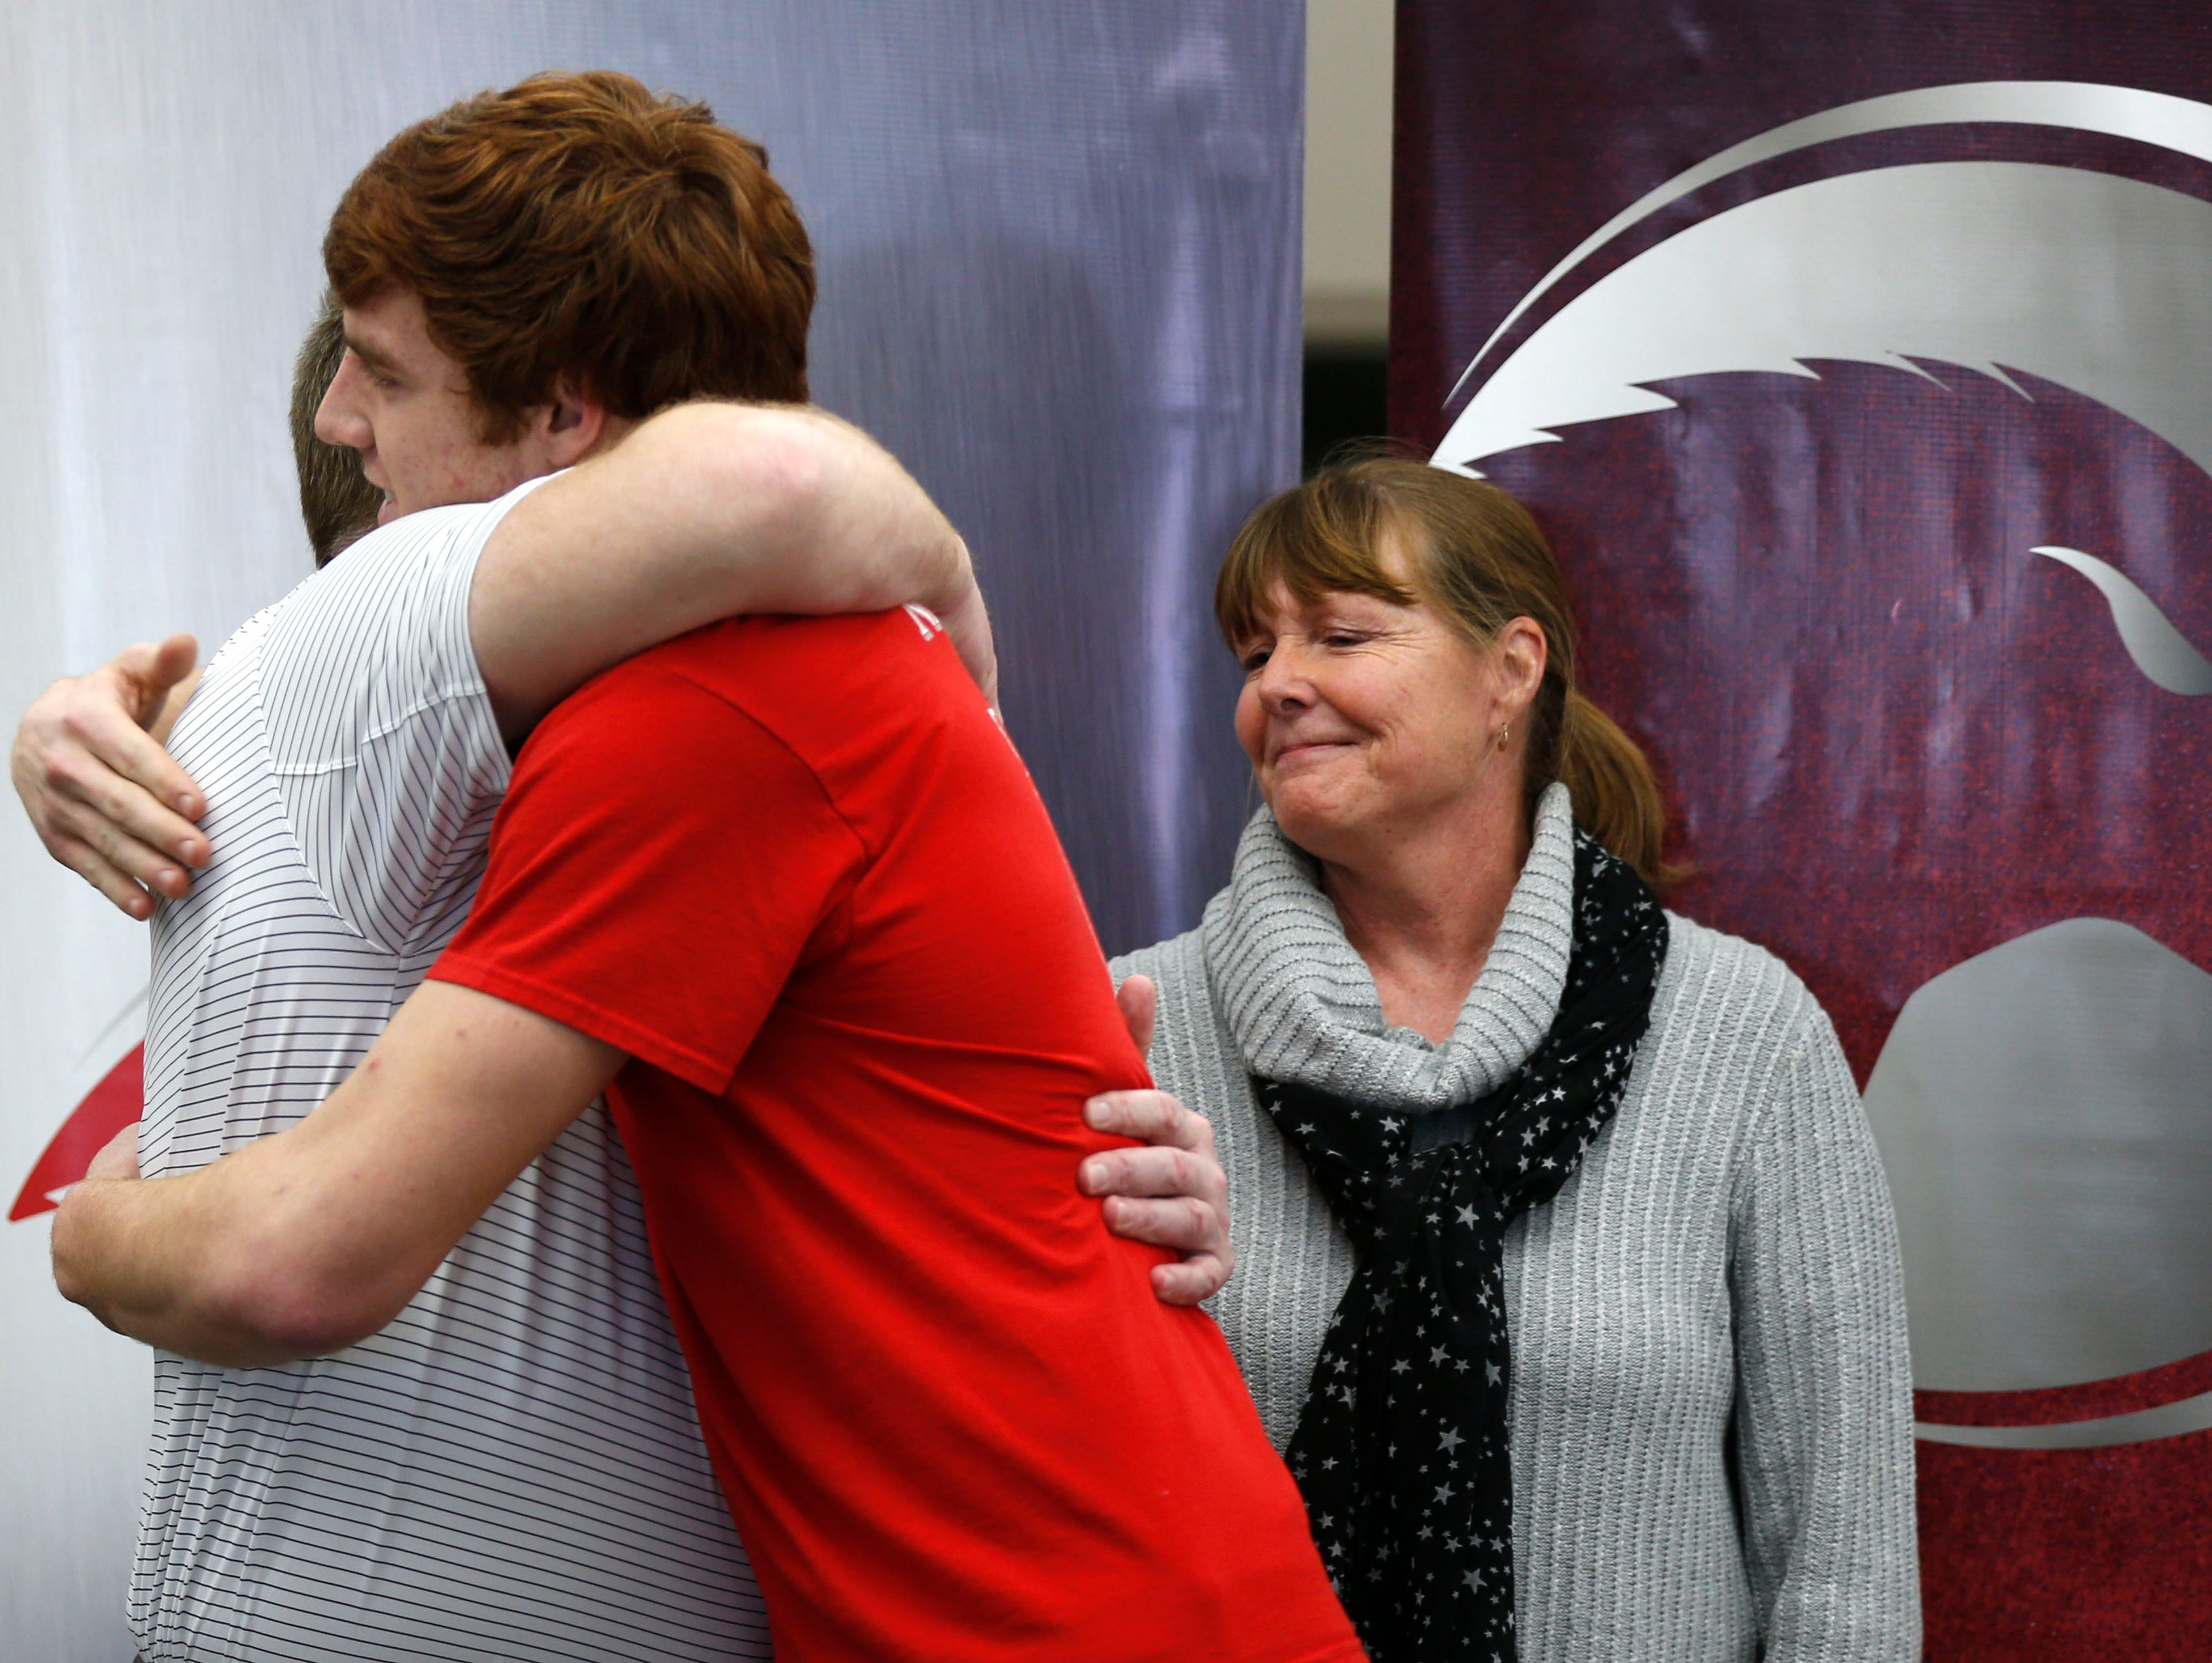 Nixa High School senior Chase Allen hugs his dad, former Missouri State football coach Terry Allen, after a press conference announcing his decision to play football at Iowa State on Friday, Jan. 29, 2016. Allen chose Iowa State over Michigan, Nebraska and 16 other NCAA Division I teams.